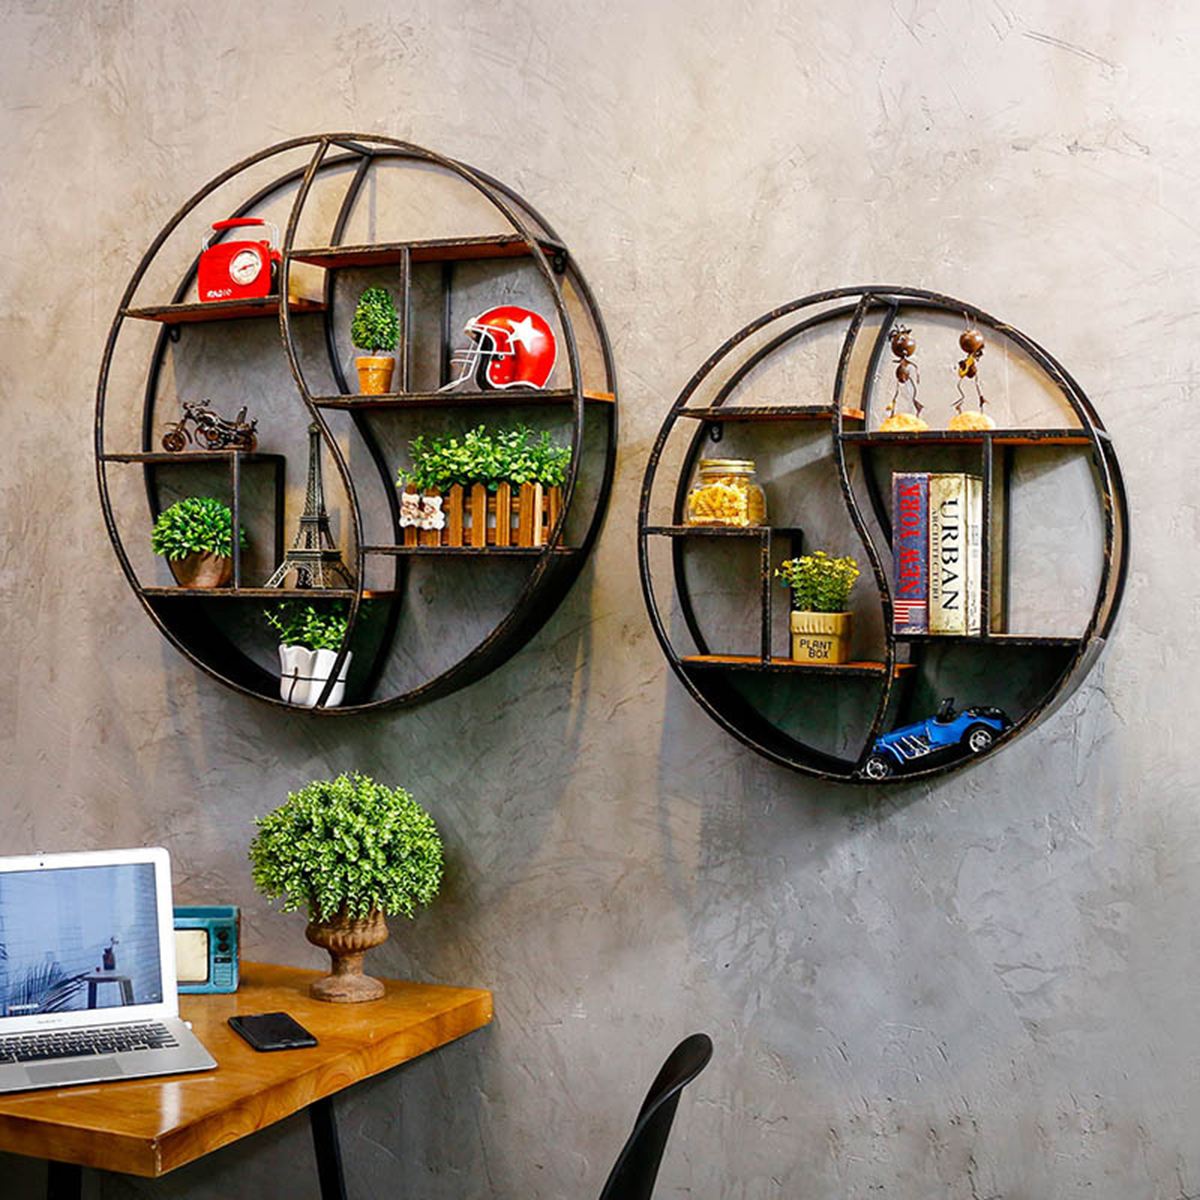 59/80cm Round Shelf Metal Wood Storage Bookcase Wall Mounted Bracket Room Decor